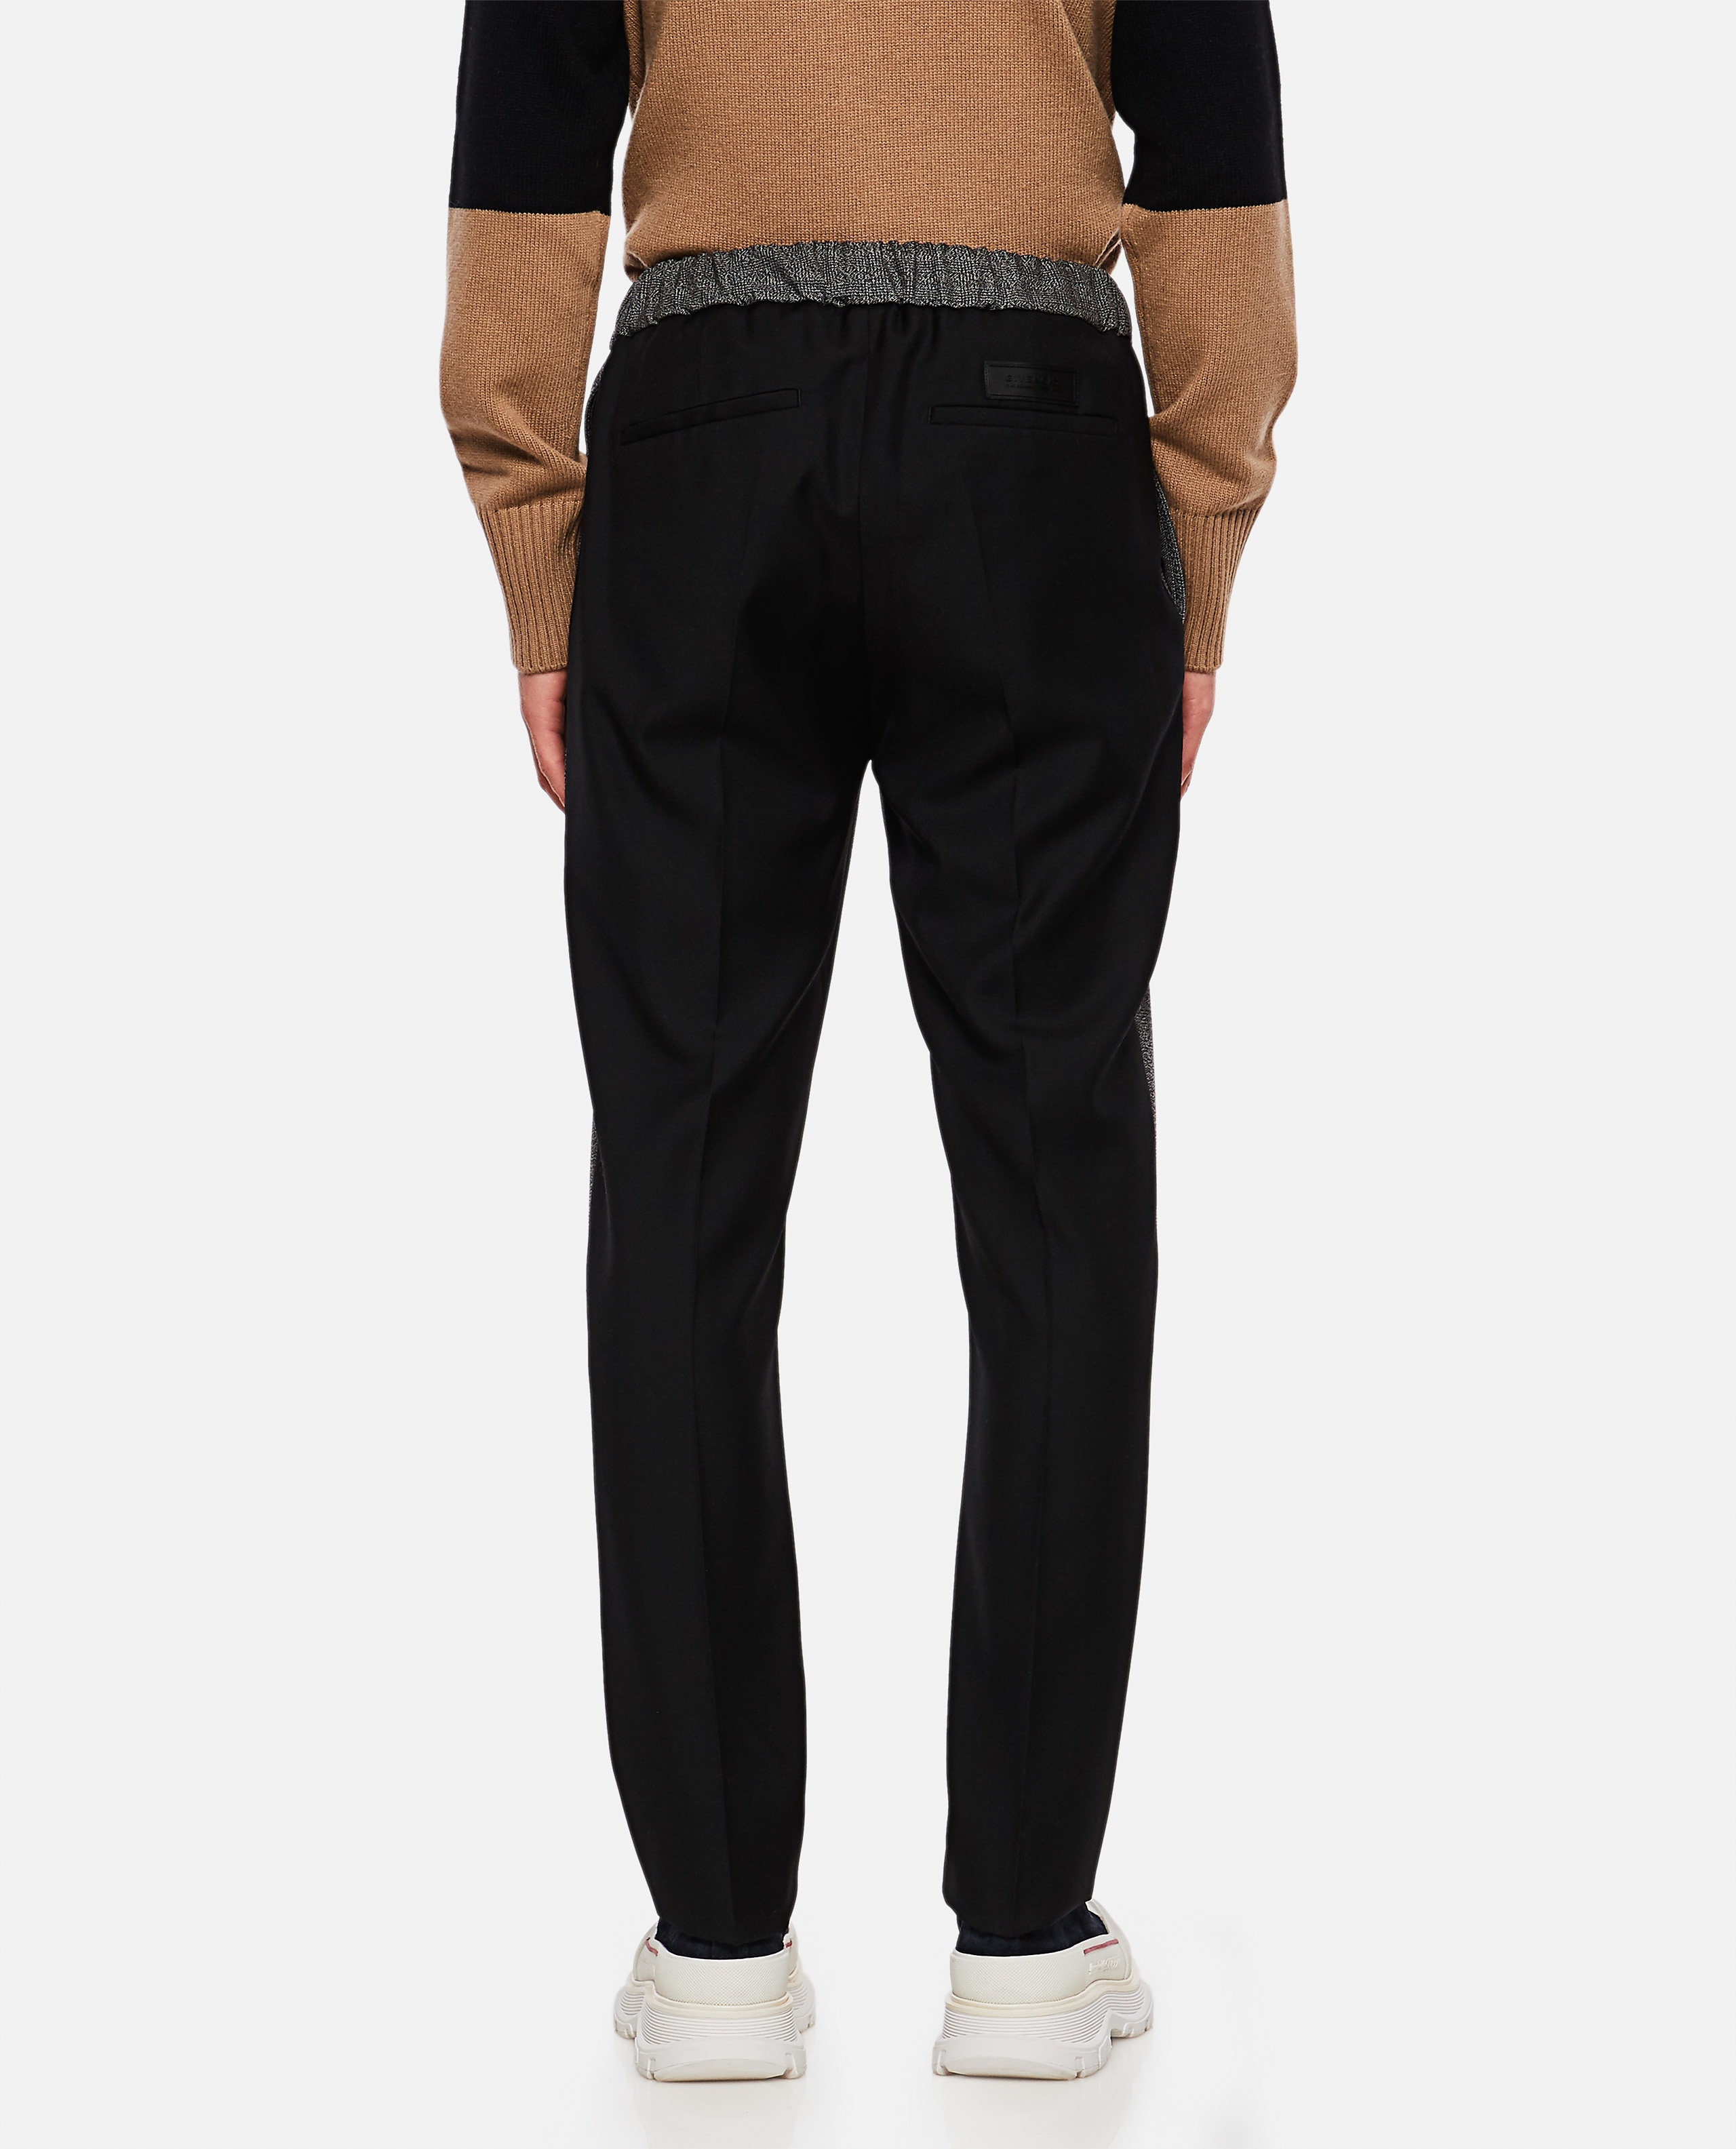 Prince of Wales trousers Men Givenchy 000280060041273 3